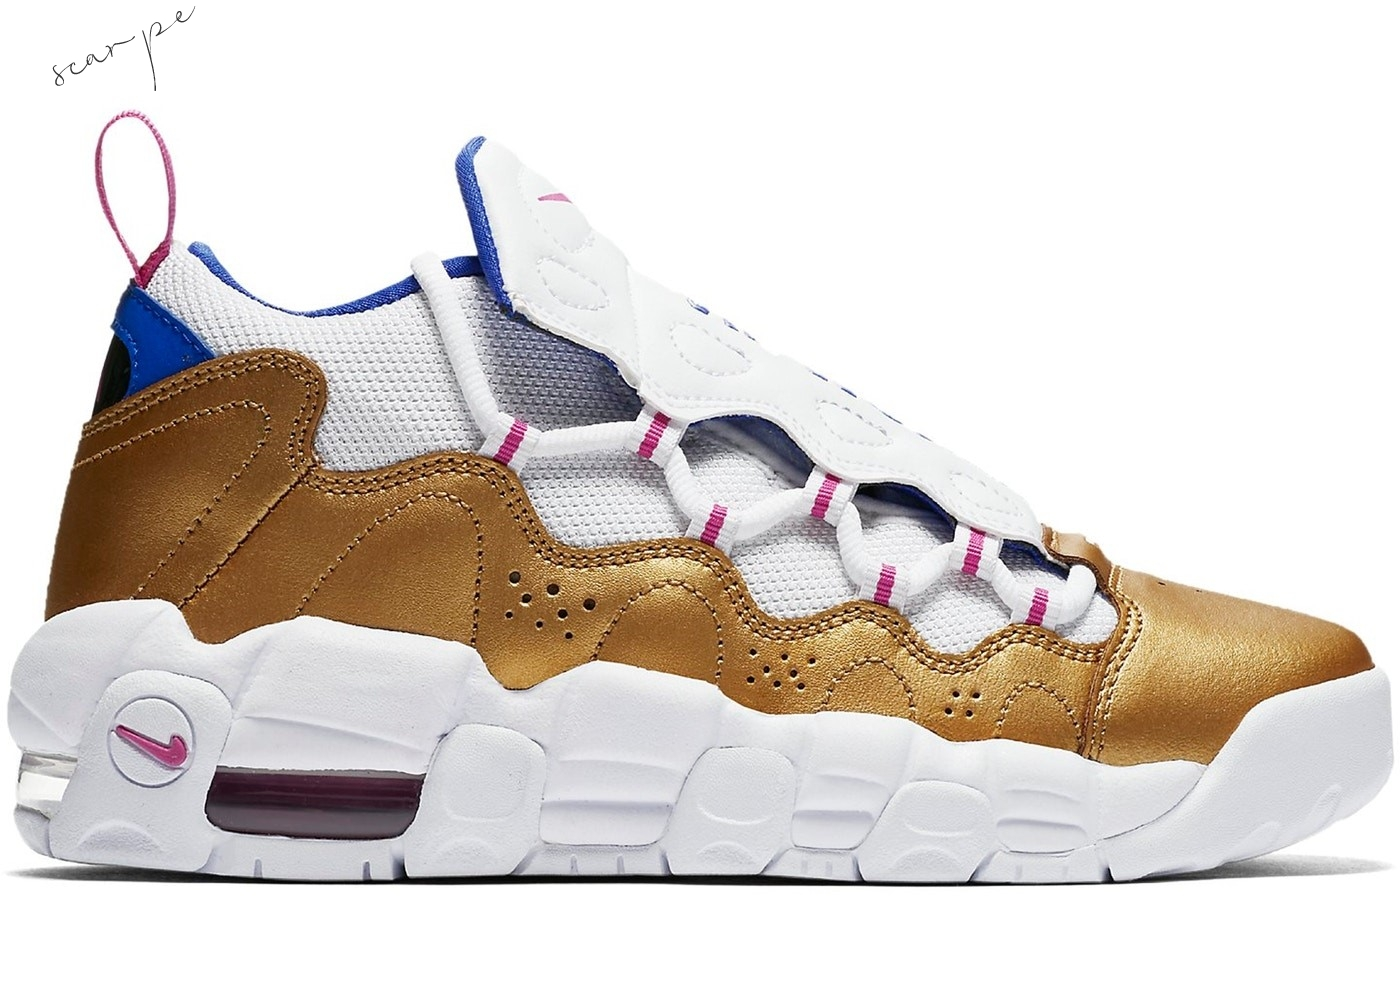 "Vendite Air More Money ""Peanut Butter & Jelly"" (Gs) Bianca Oro (ah5215-101) Scarpe Online"